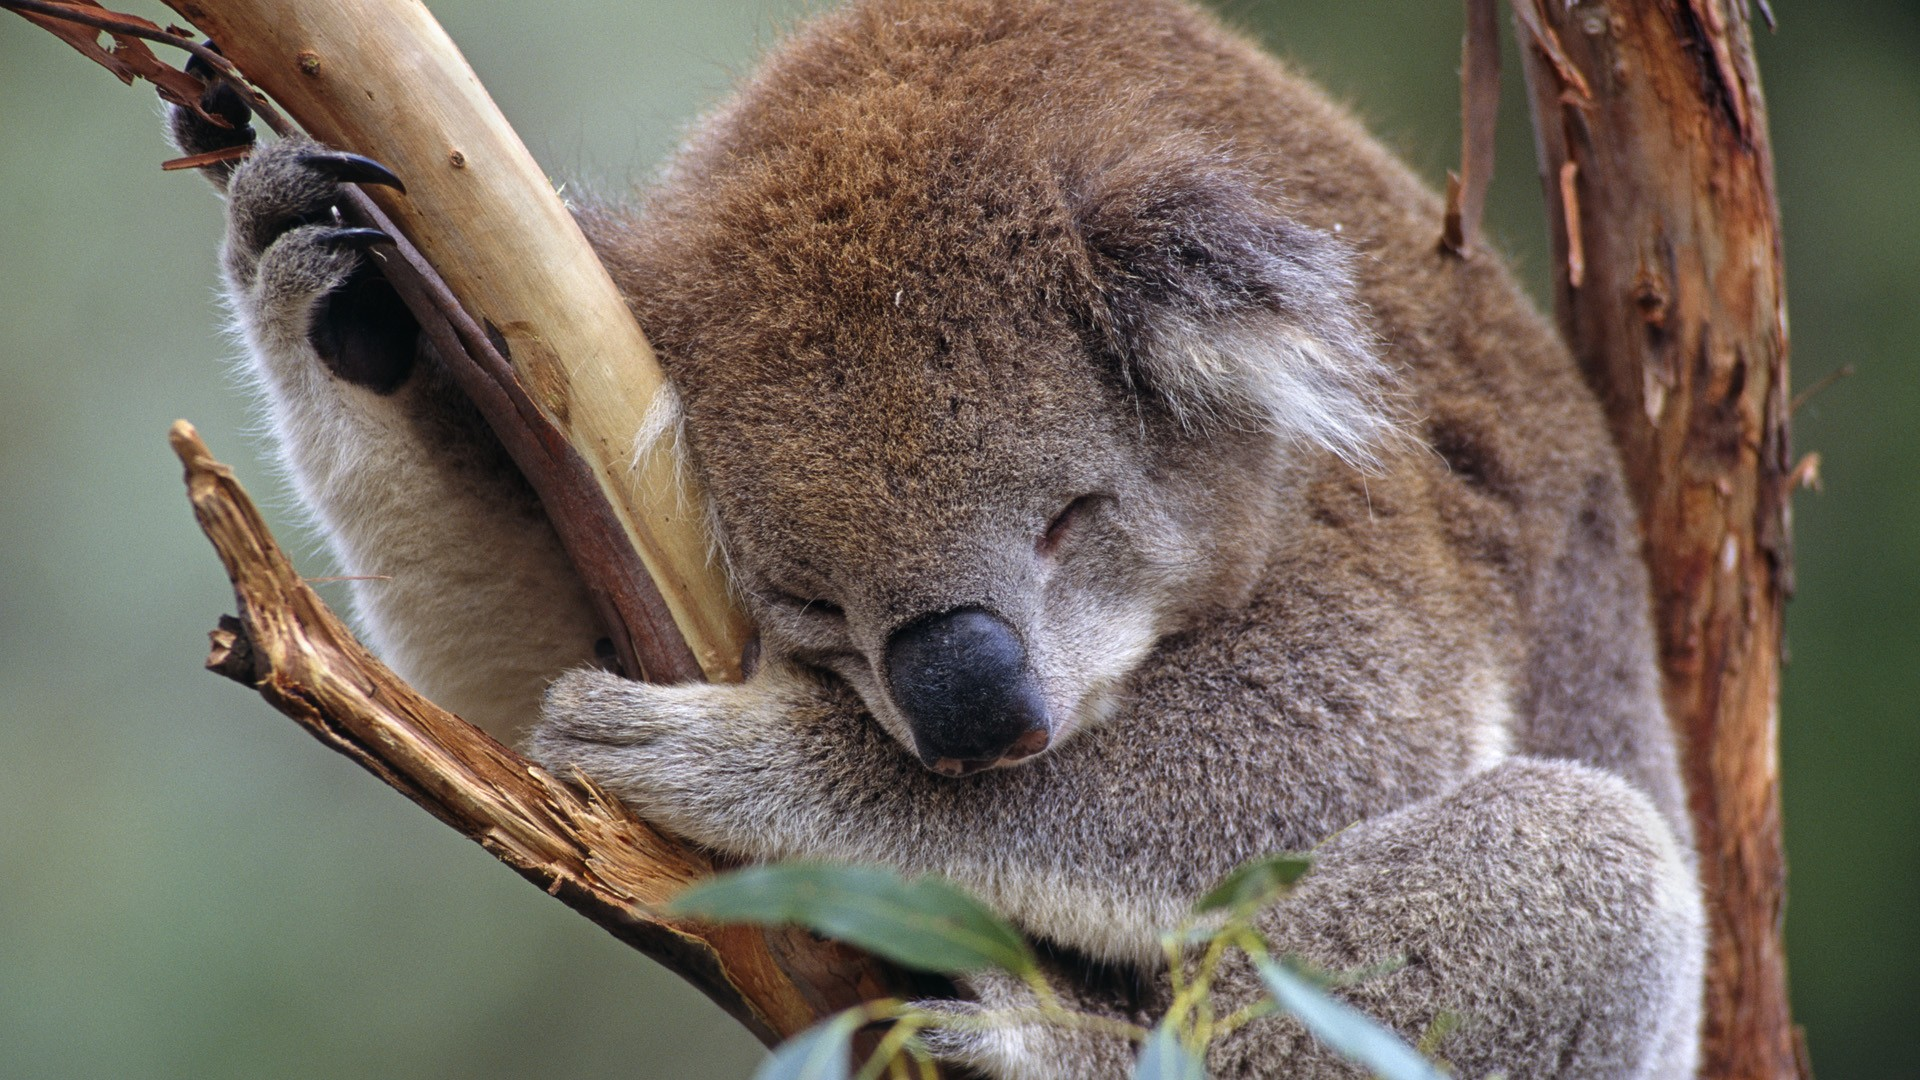 Cute Koala Wallpaper